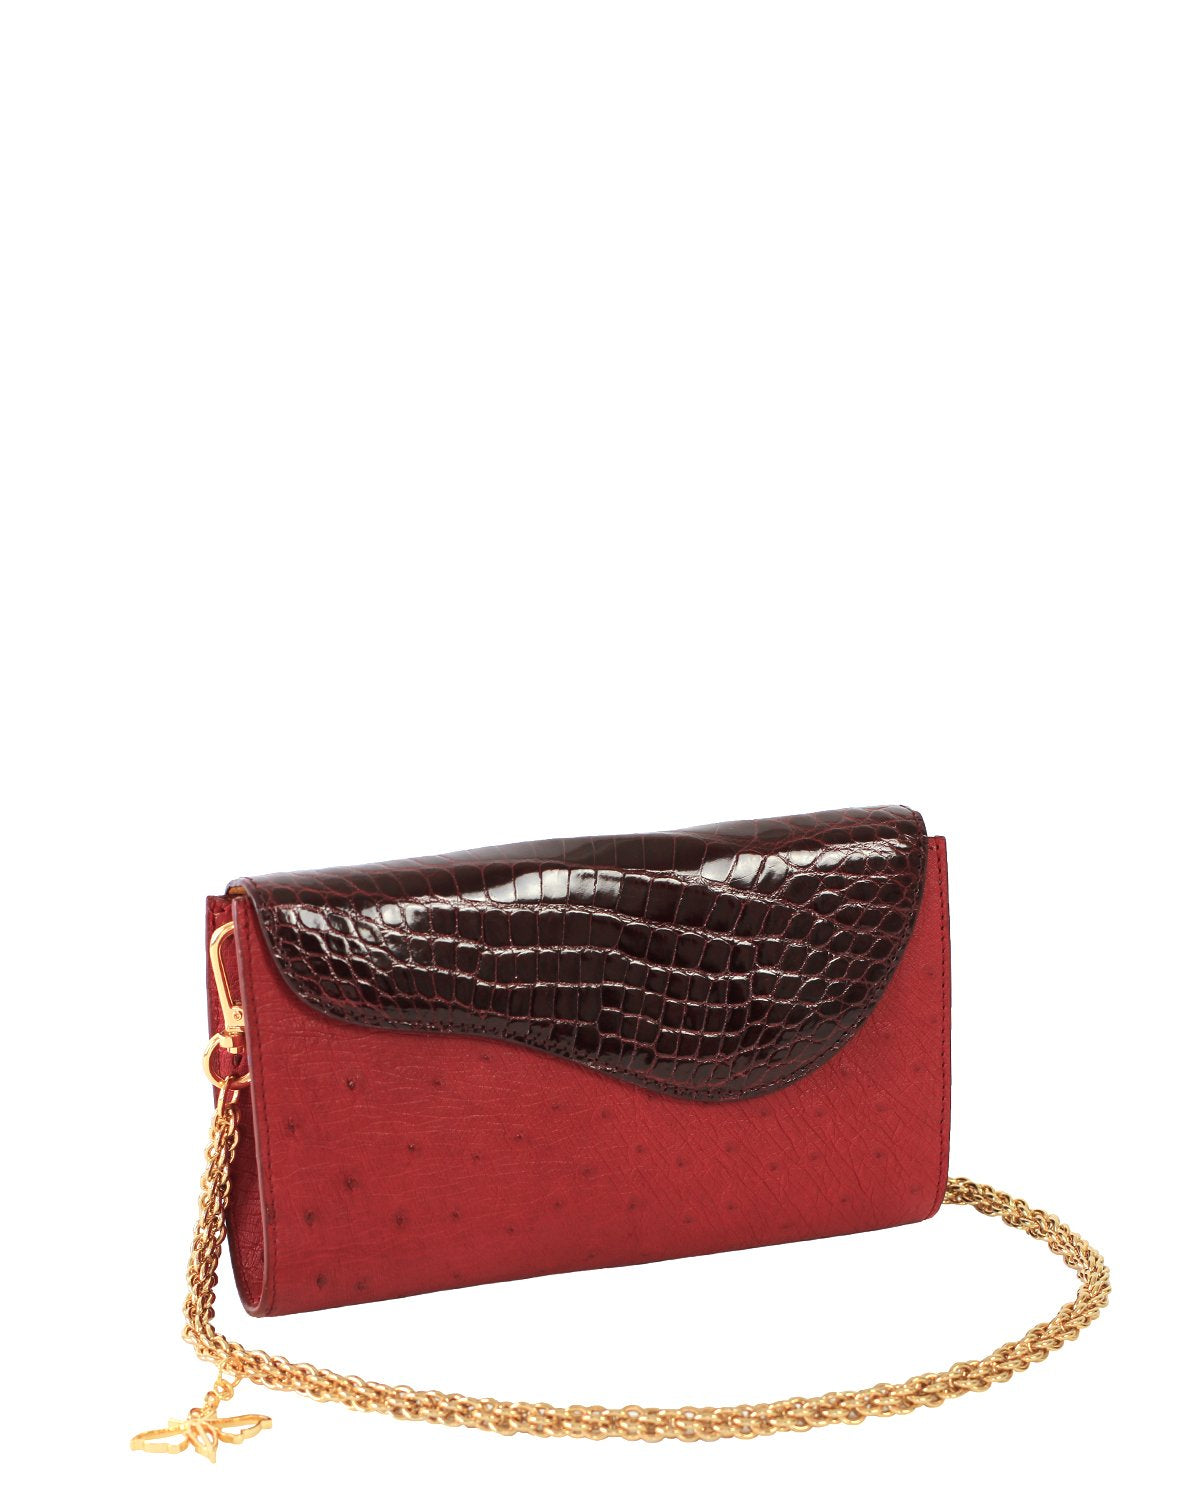 DARK RED ALLIGATOR OSTRICH OSCAR CLUTCH YELLOW GOLD YARA BASHOOR ANGLE VIEW